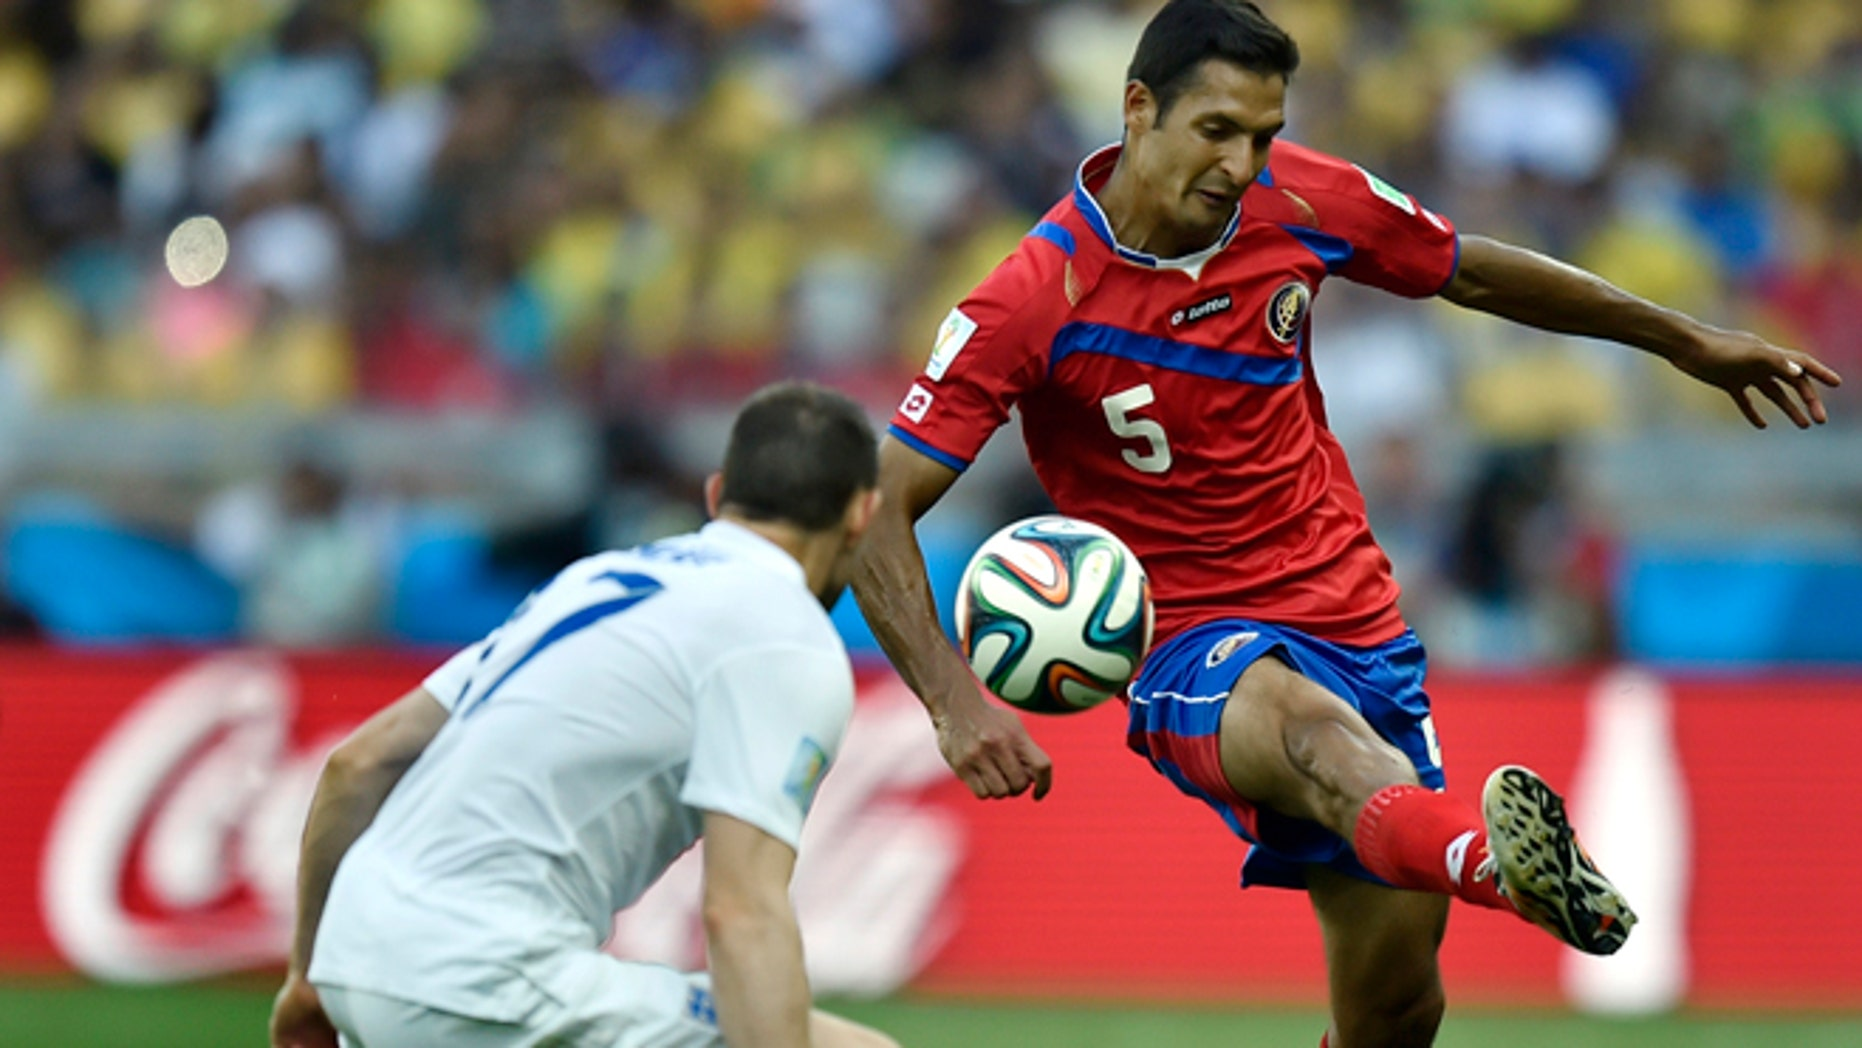 June 24, 2014: Costa Rica's Celso Borges, right, controls the ball past England's Jack Wilshere during the group D World Cup soccer match between Costa Rica and England at the Mineirao Stadium in Belo Horizonte, Brazil.